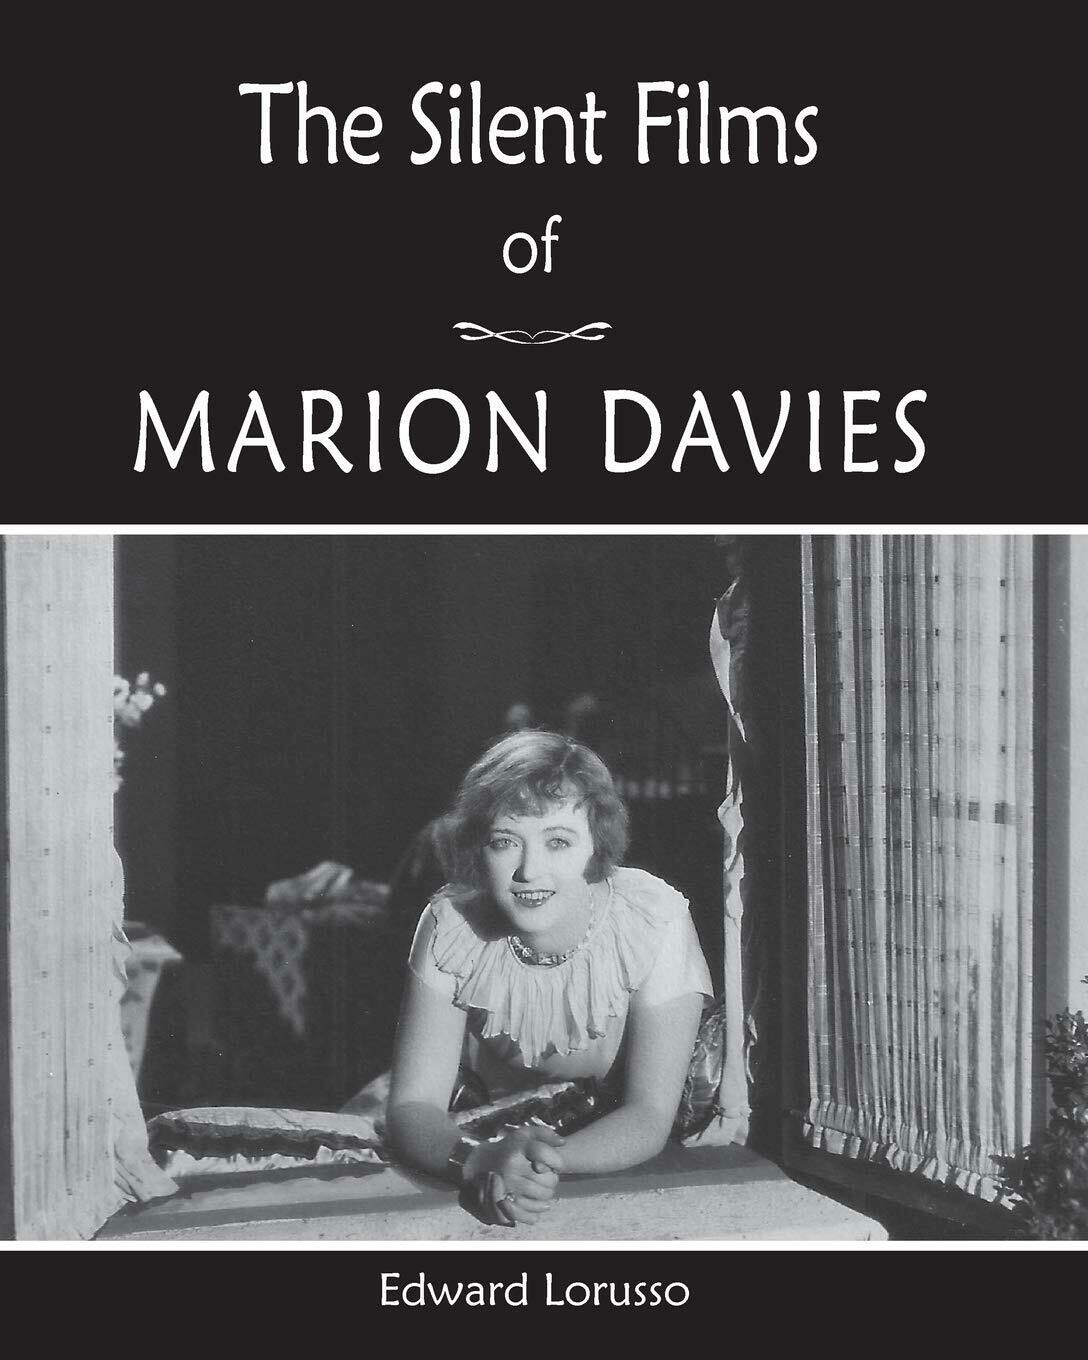 The Silent Films of Marion Davies